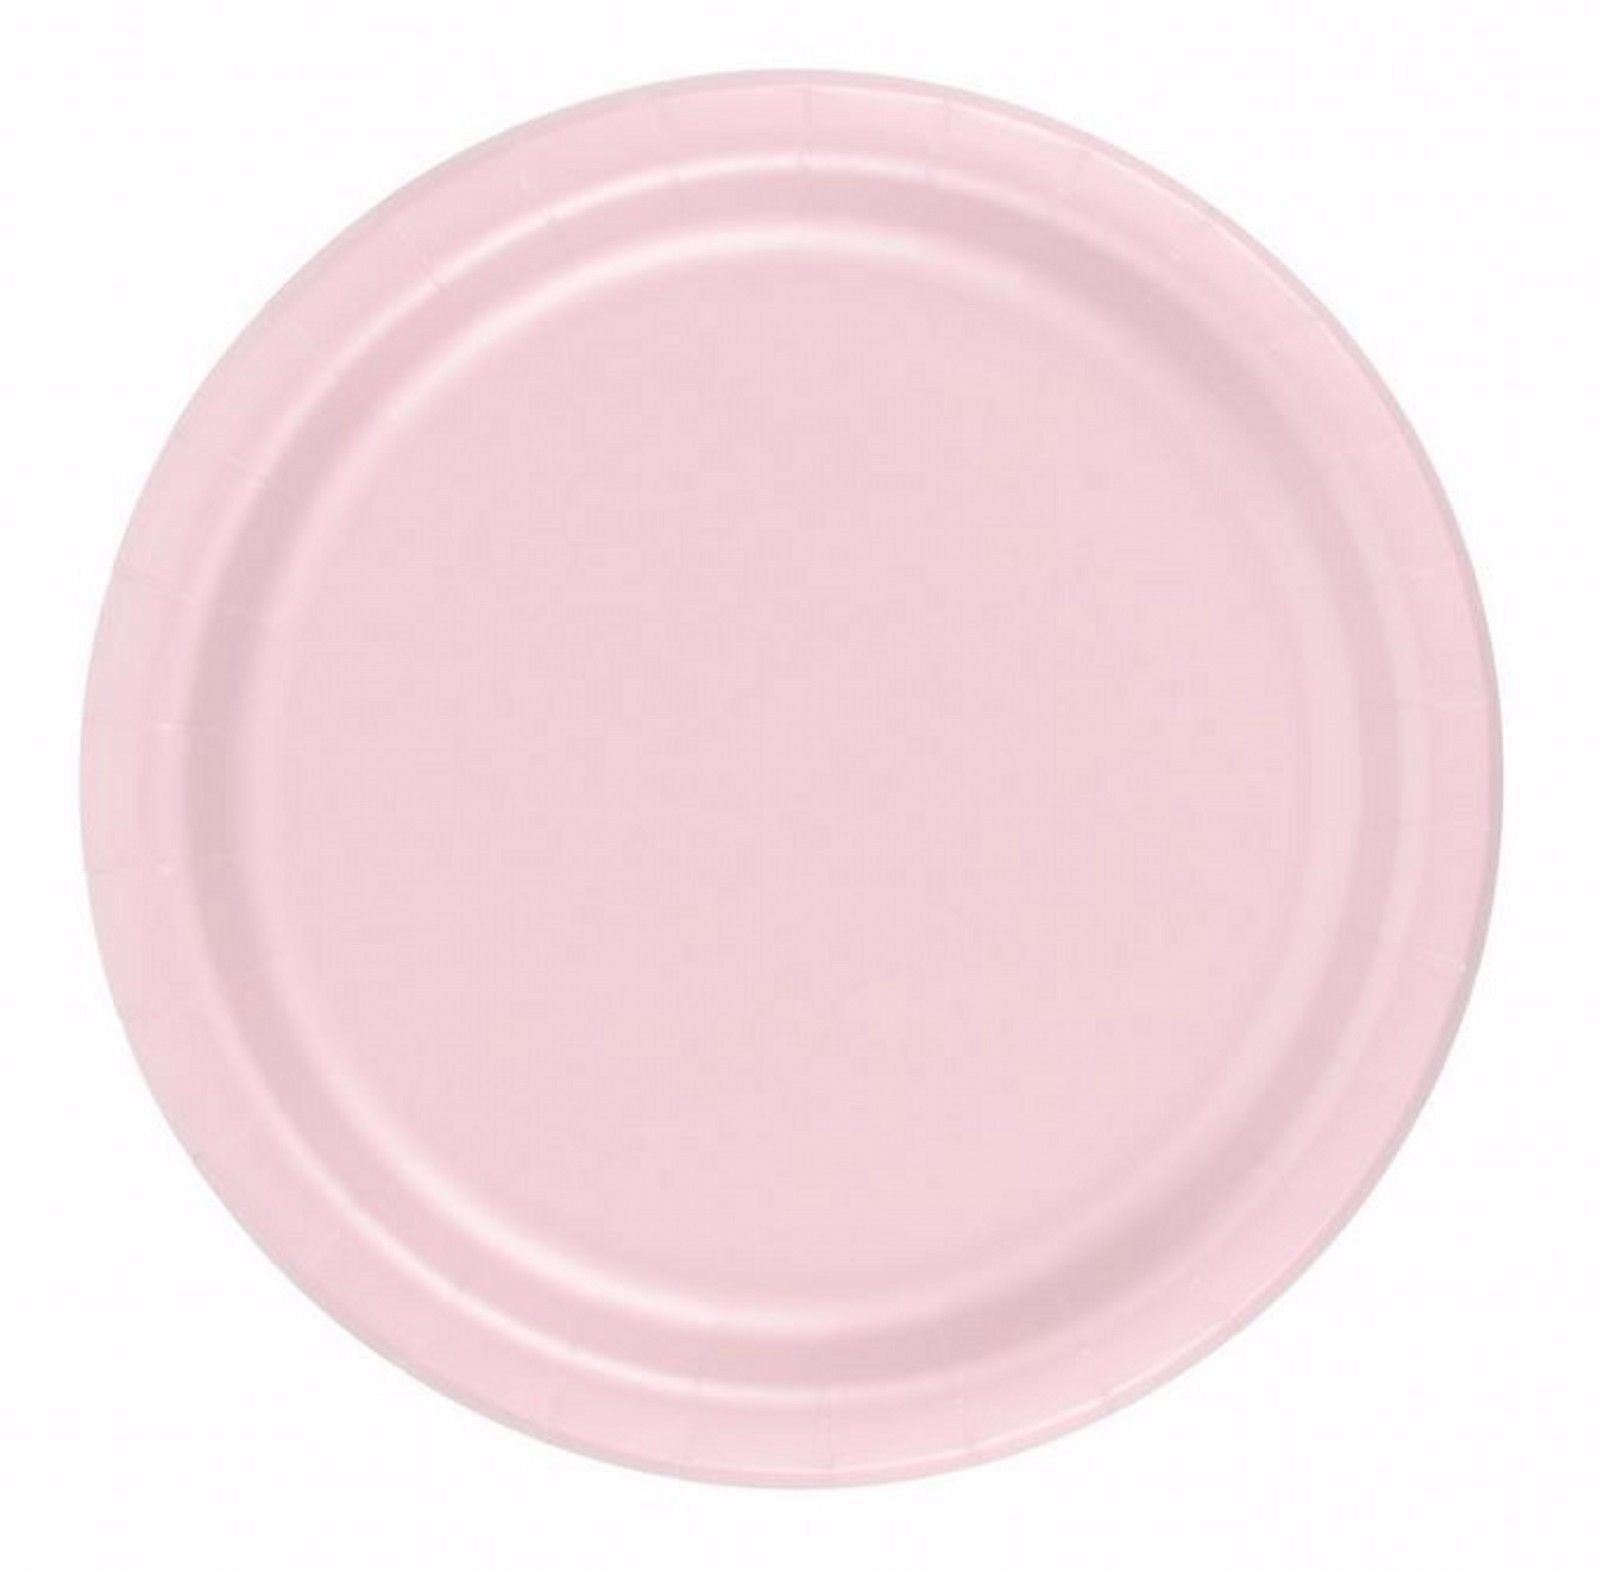 "24 plates 9"" paper dinner lunch plates wax coated"